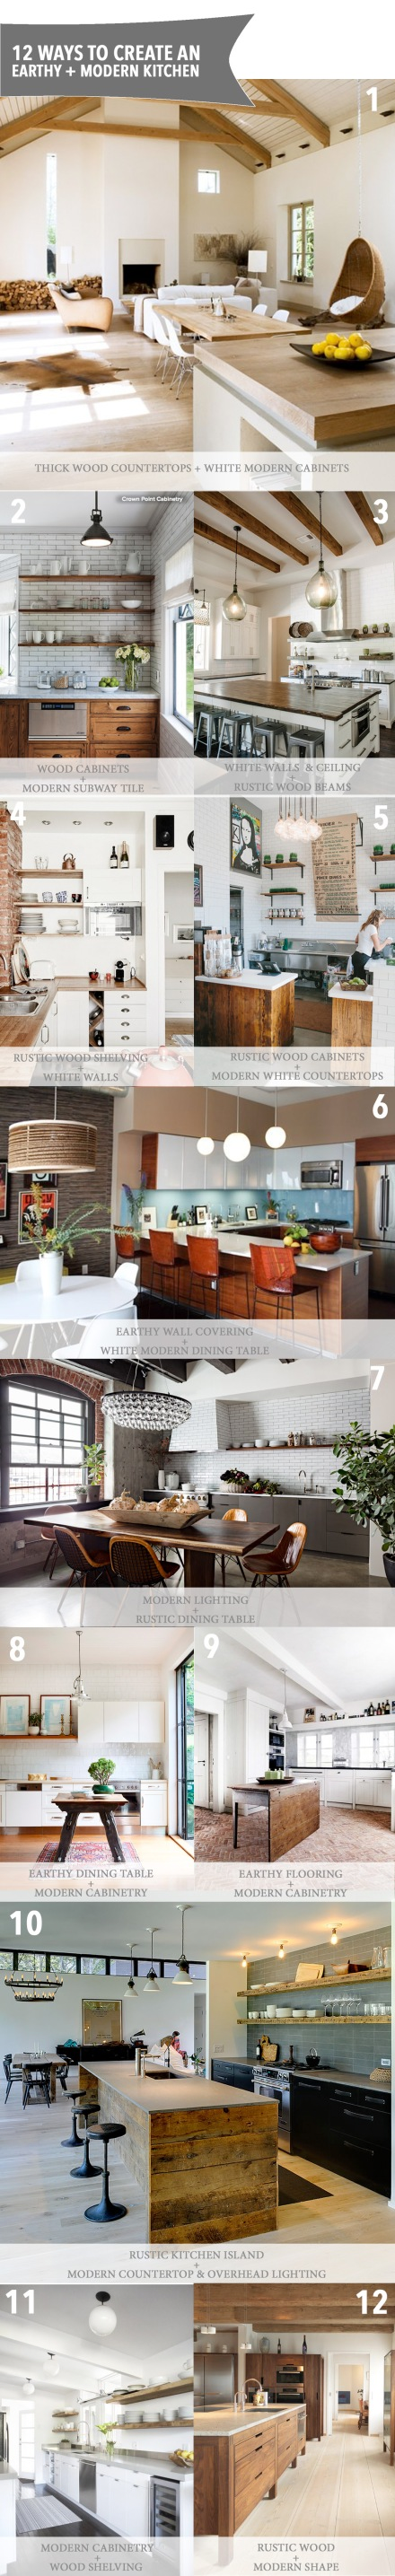 12 Ways to to Create an Earthy & Modern Kitchen | www.theanatomyofdesign.com